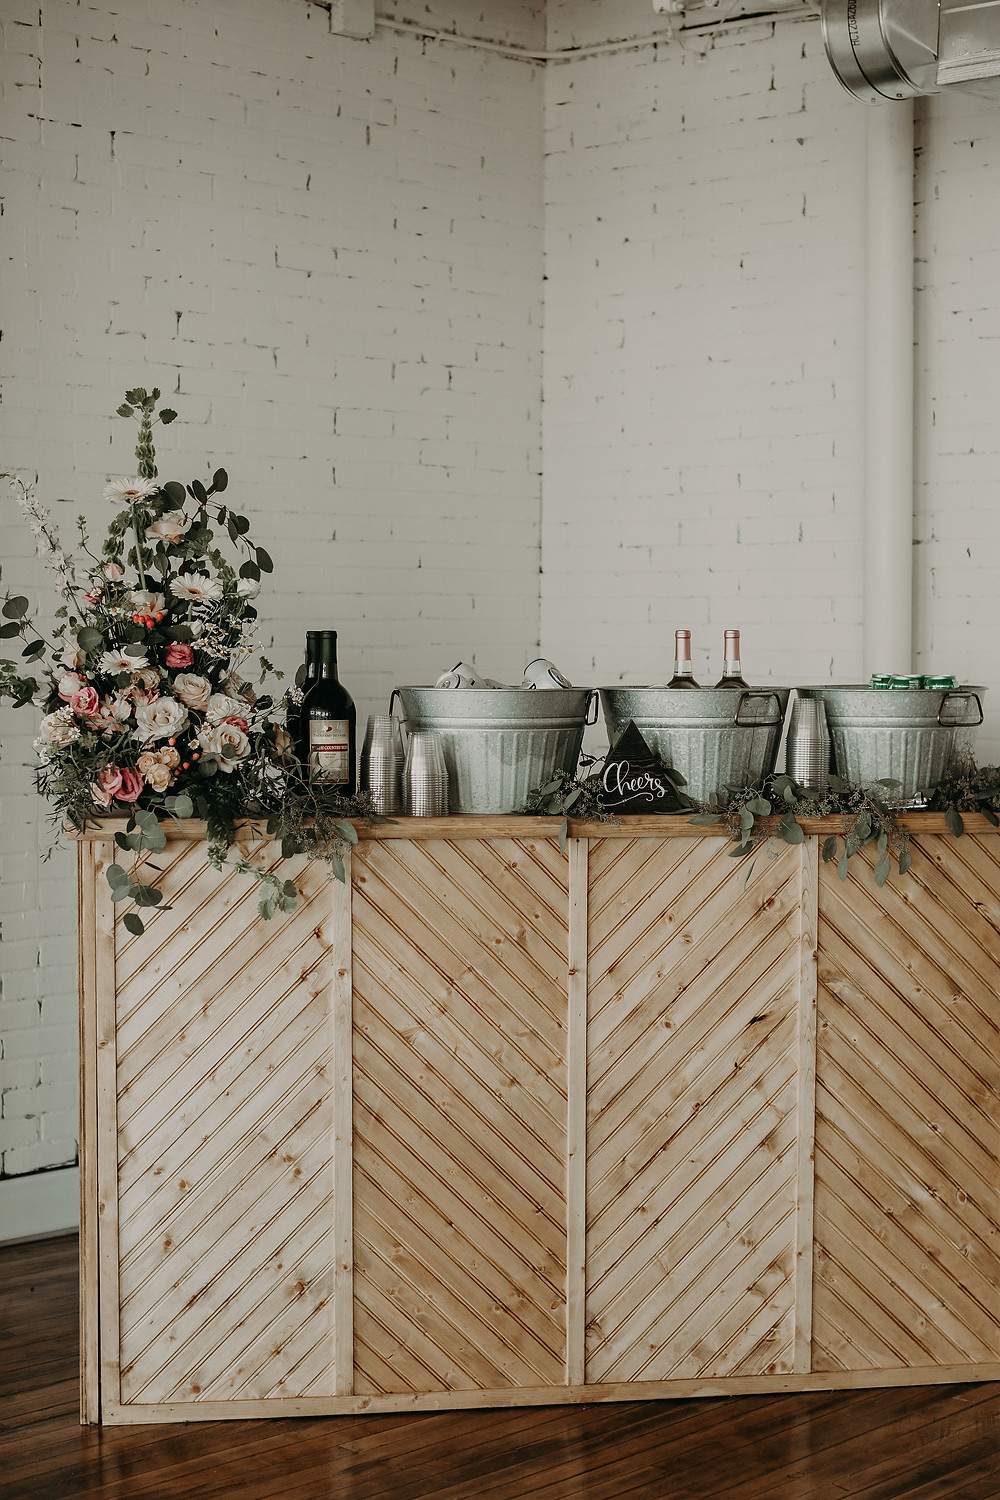 Small wedding bar ideas: Summer Small Wedding at The Lincoln Loft by Pretty Little Vintage Co.